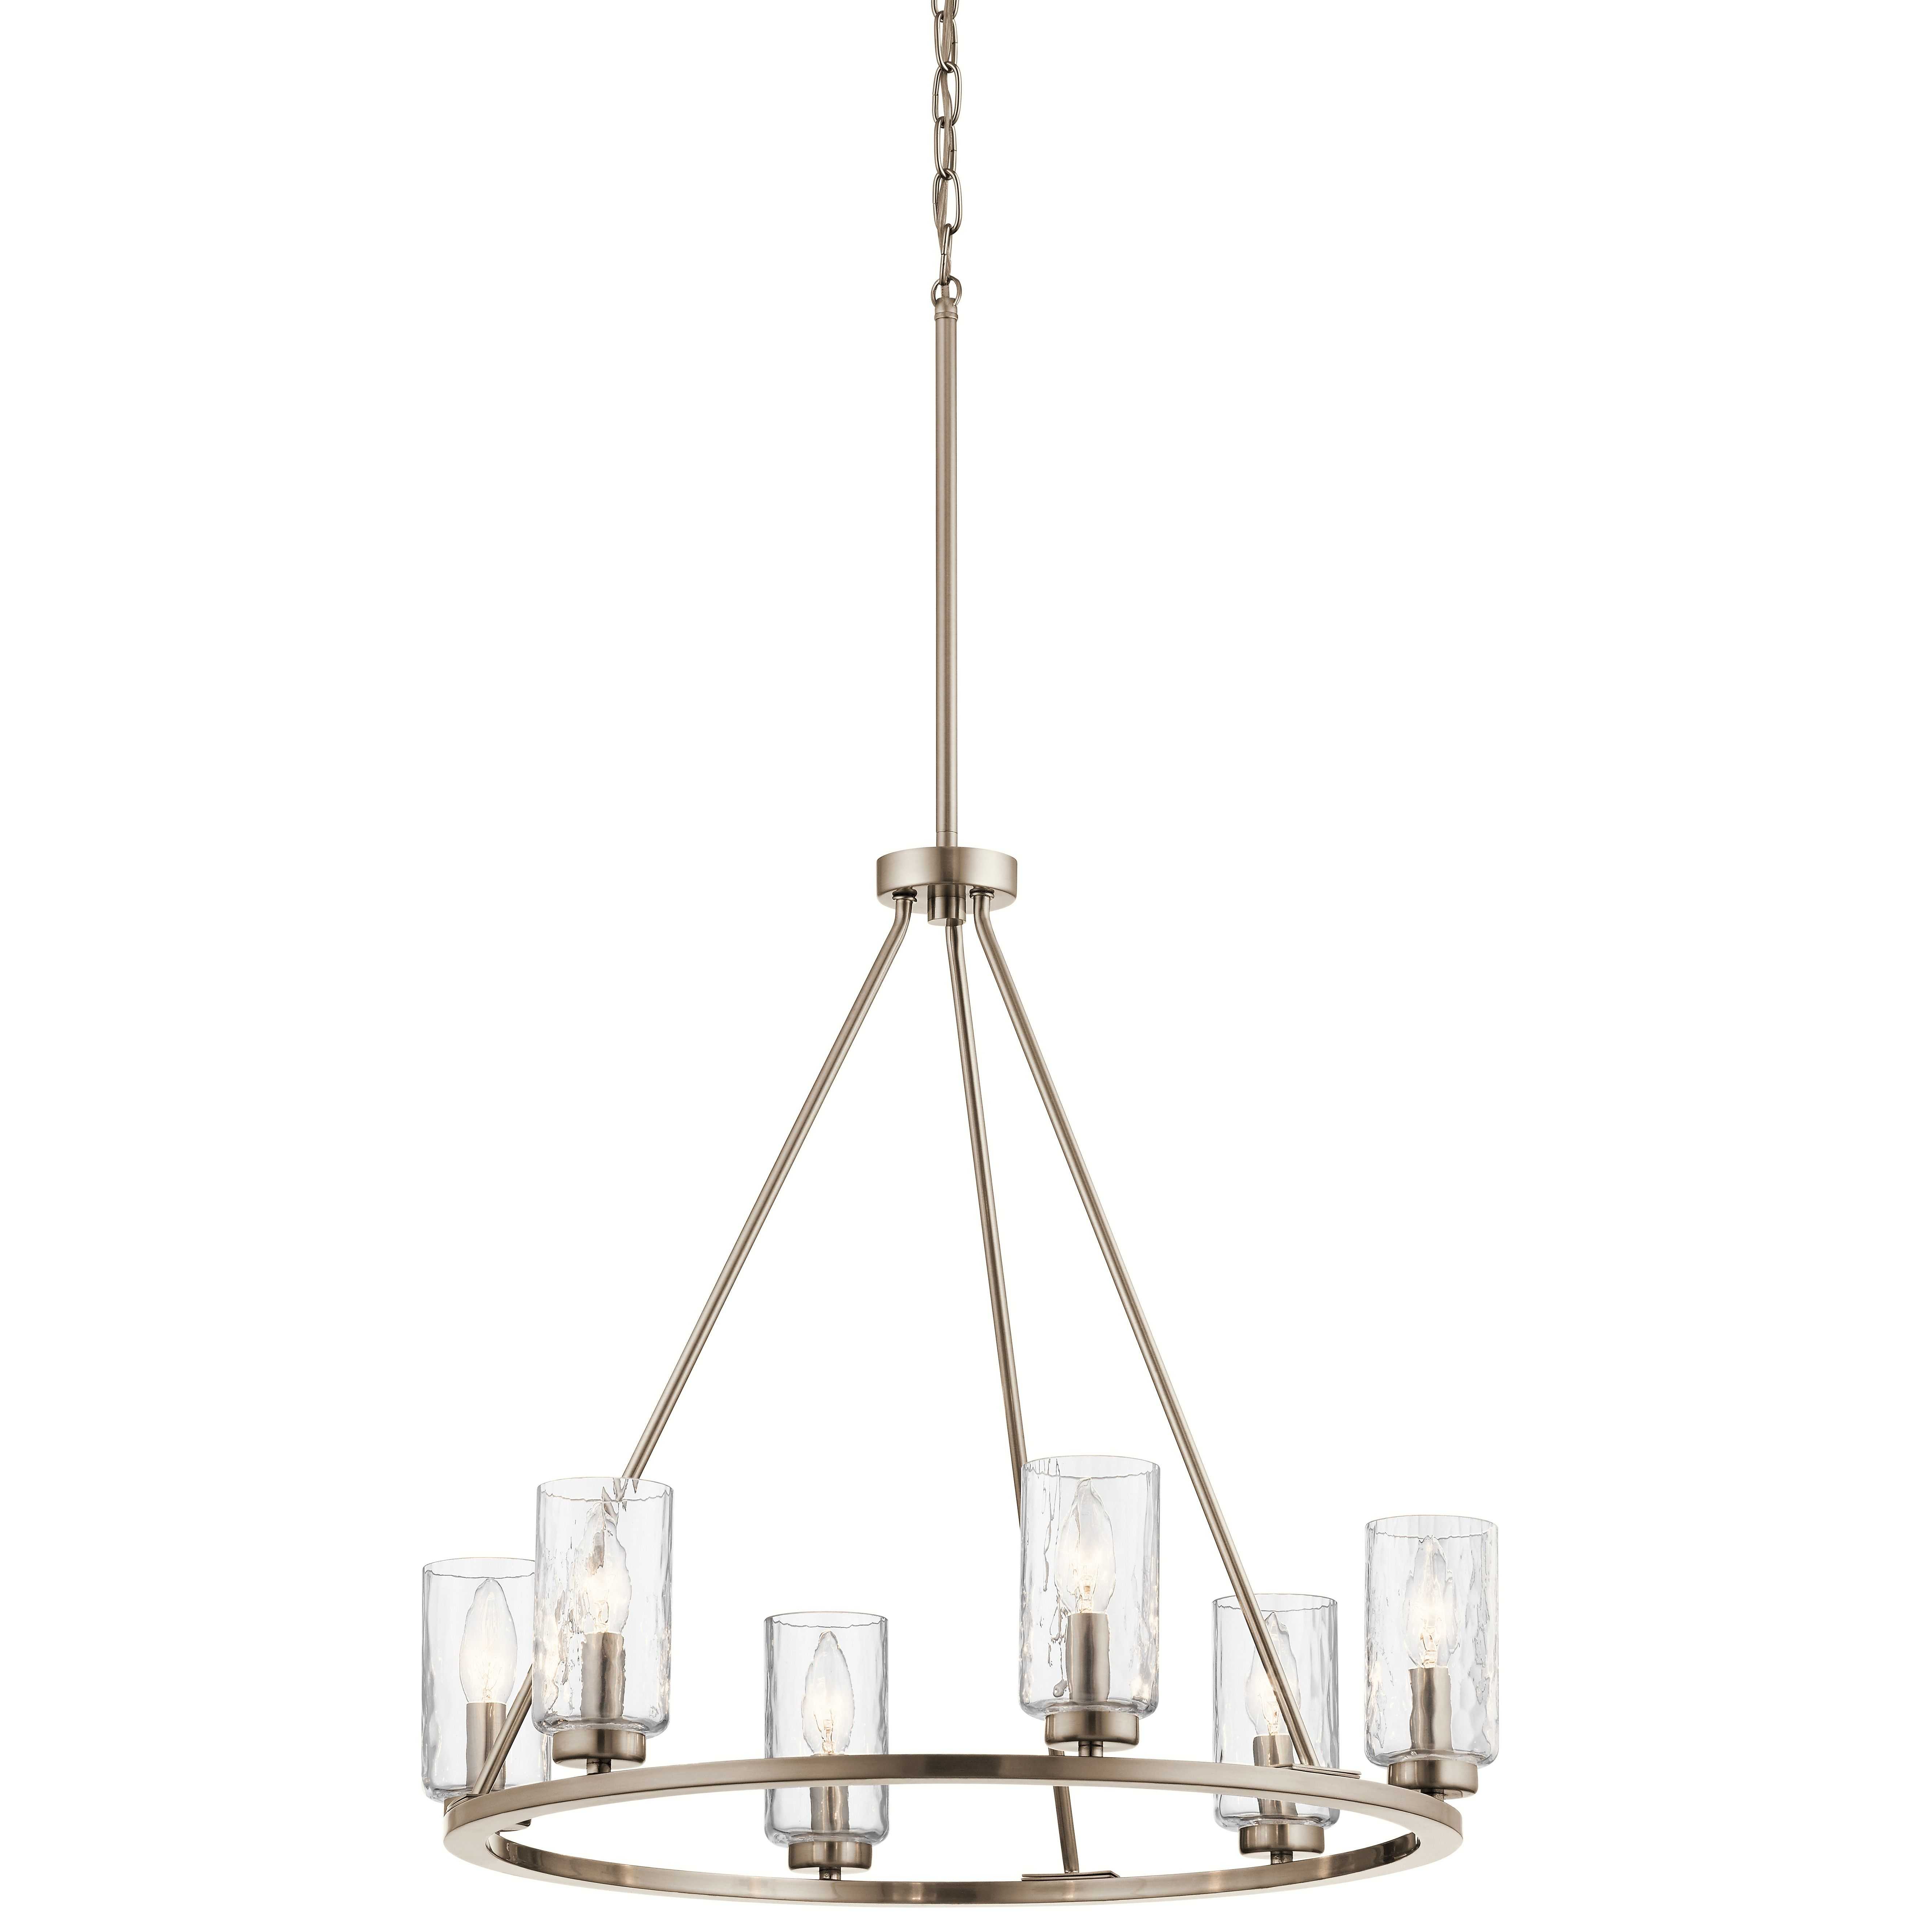 Kichler Marita 6 Light Brushed Nickel Transitional Textured With Suki 5 Light Shaded Chandeliers (View 13 of 30)